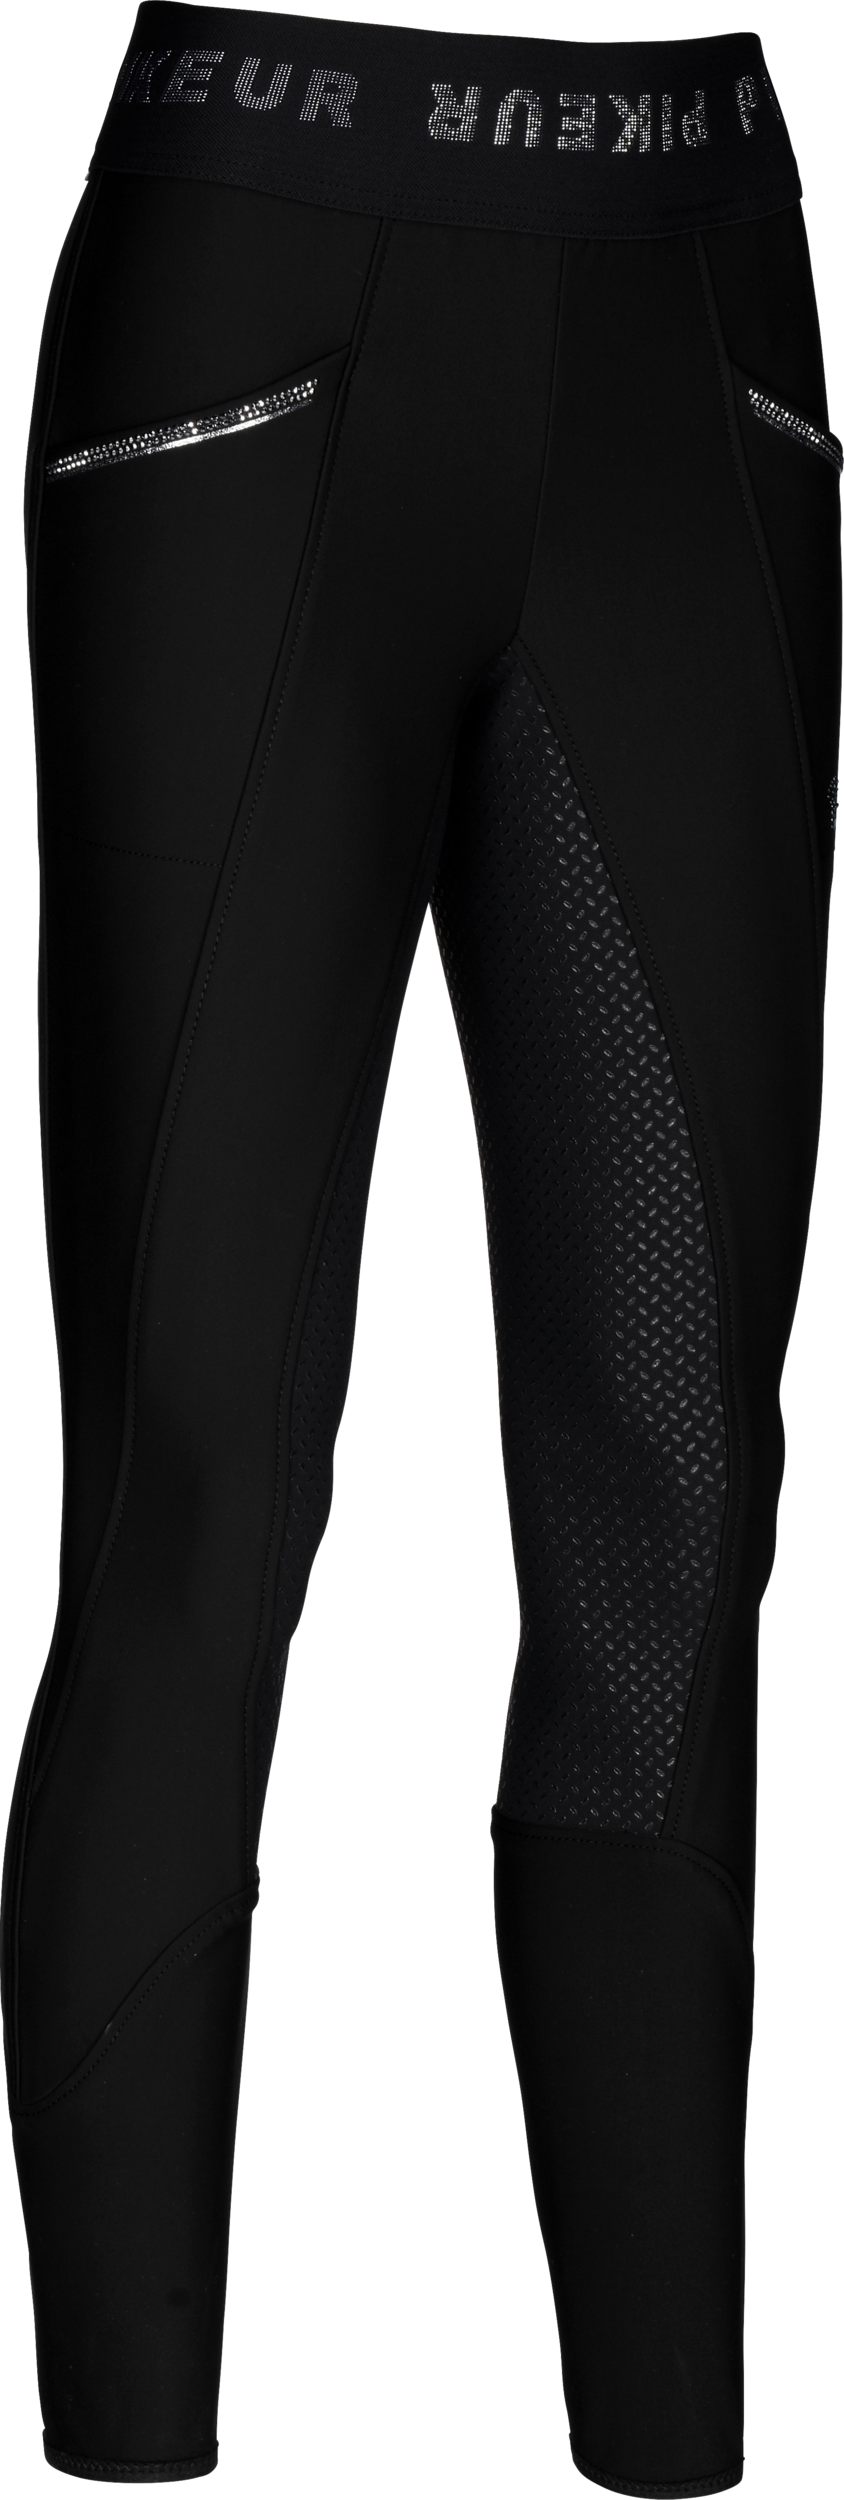 KYNA GRIP ATHLEISURE